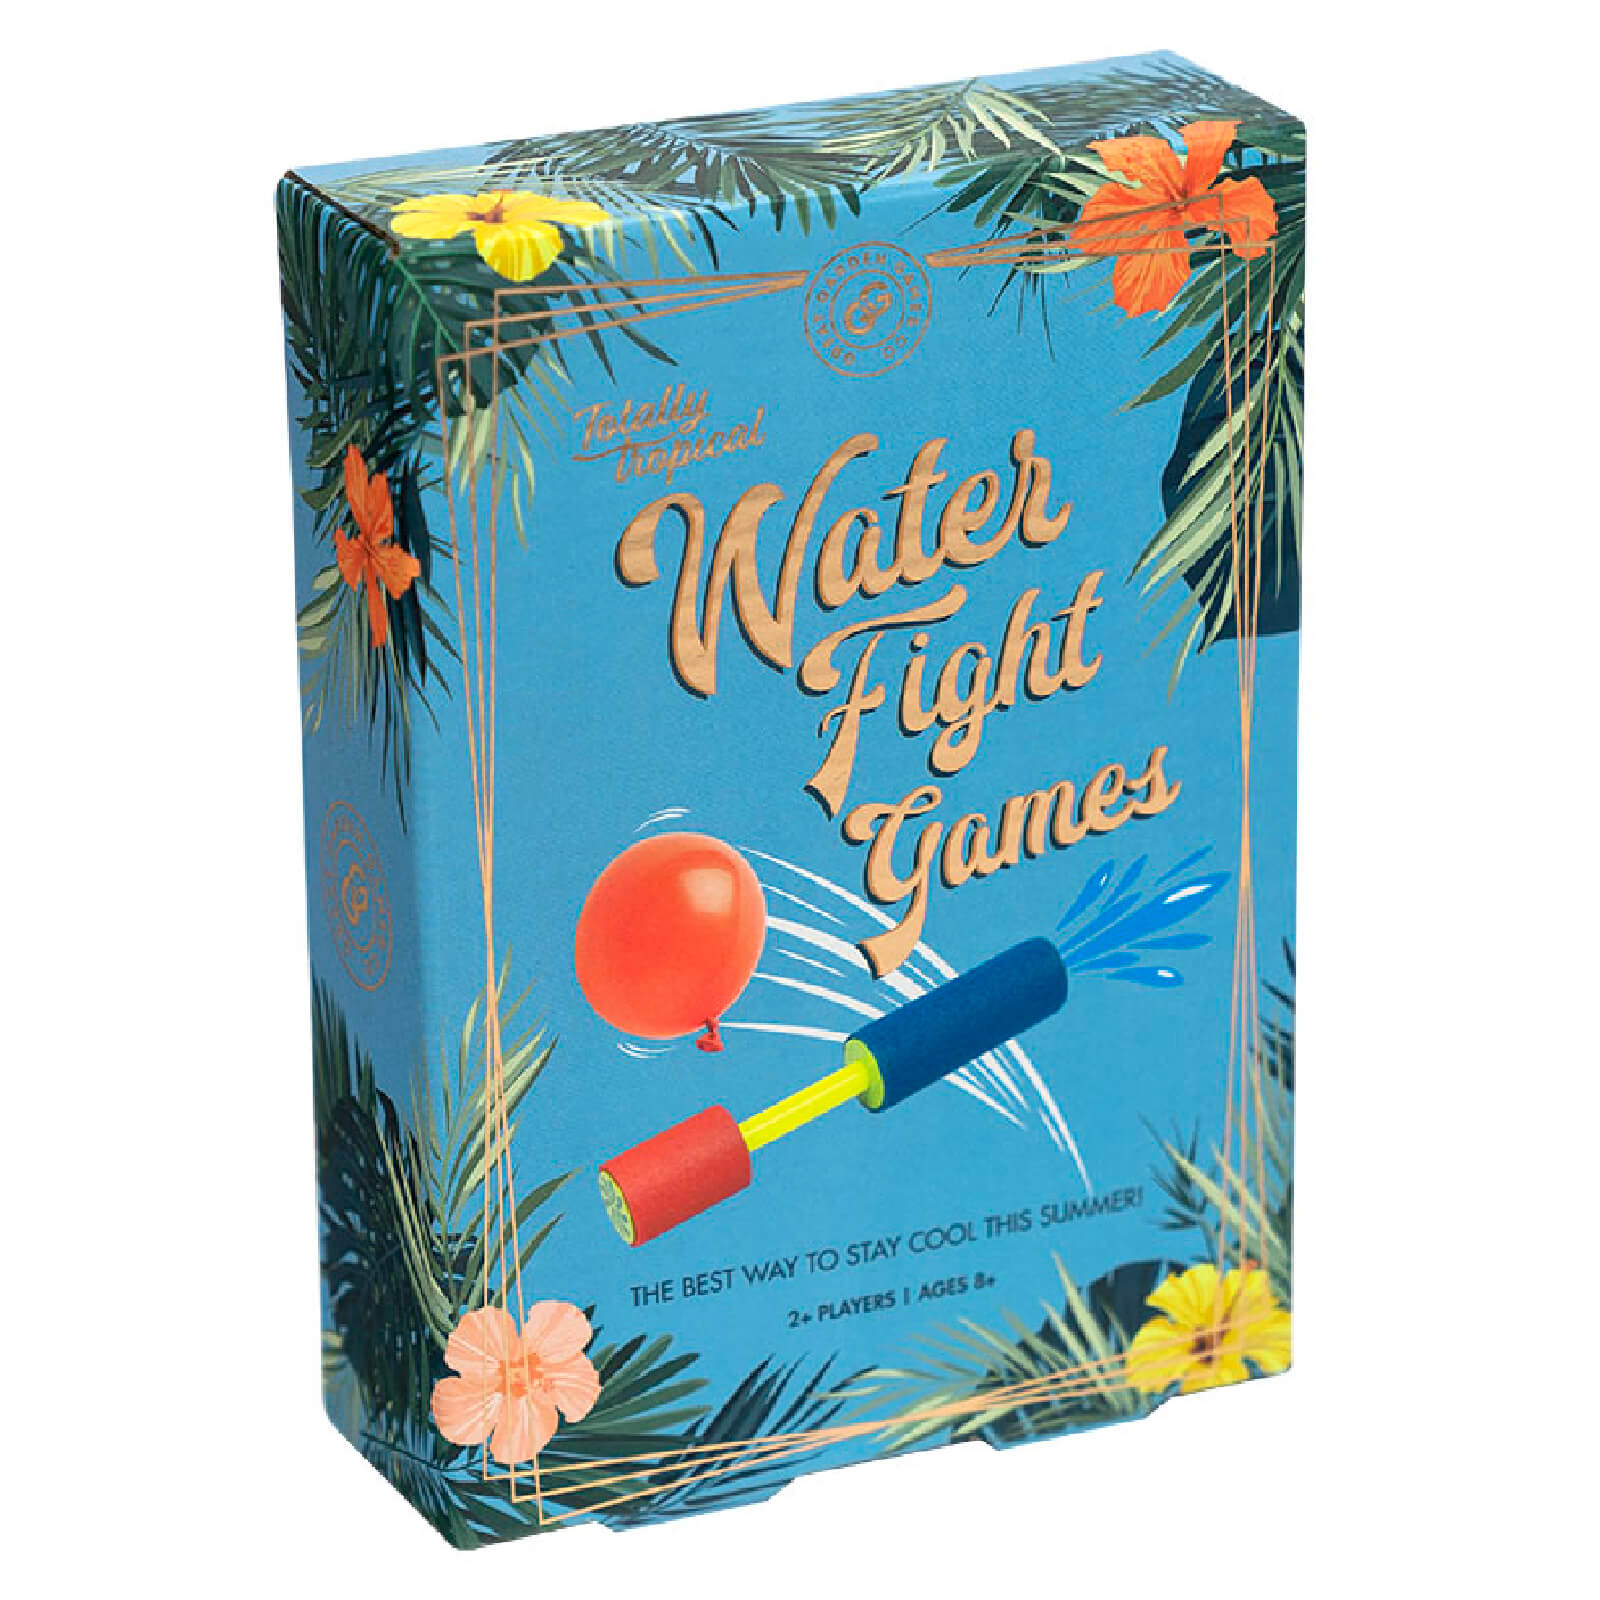 Image of Great Garden Games Co. Ultimate Water Fight Games